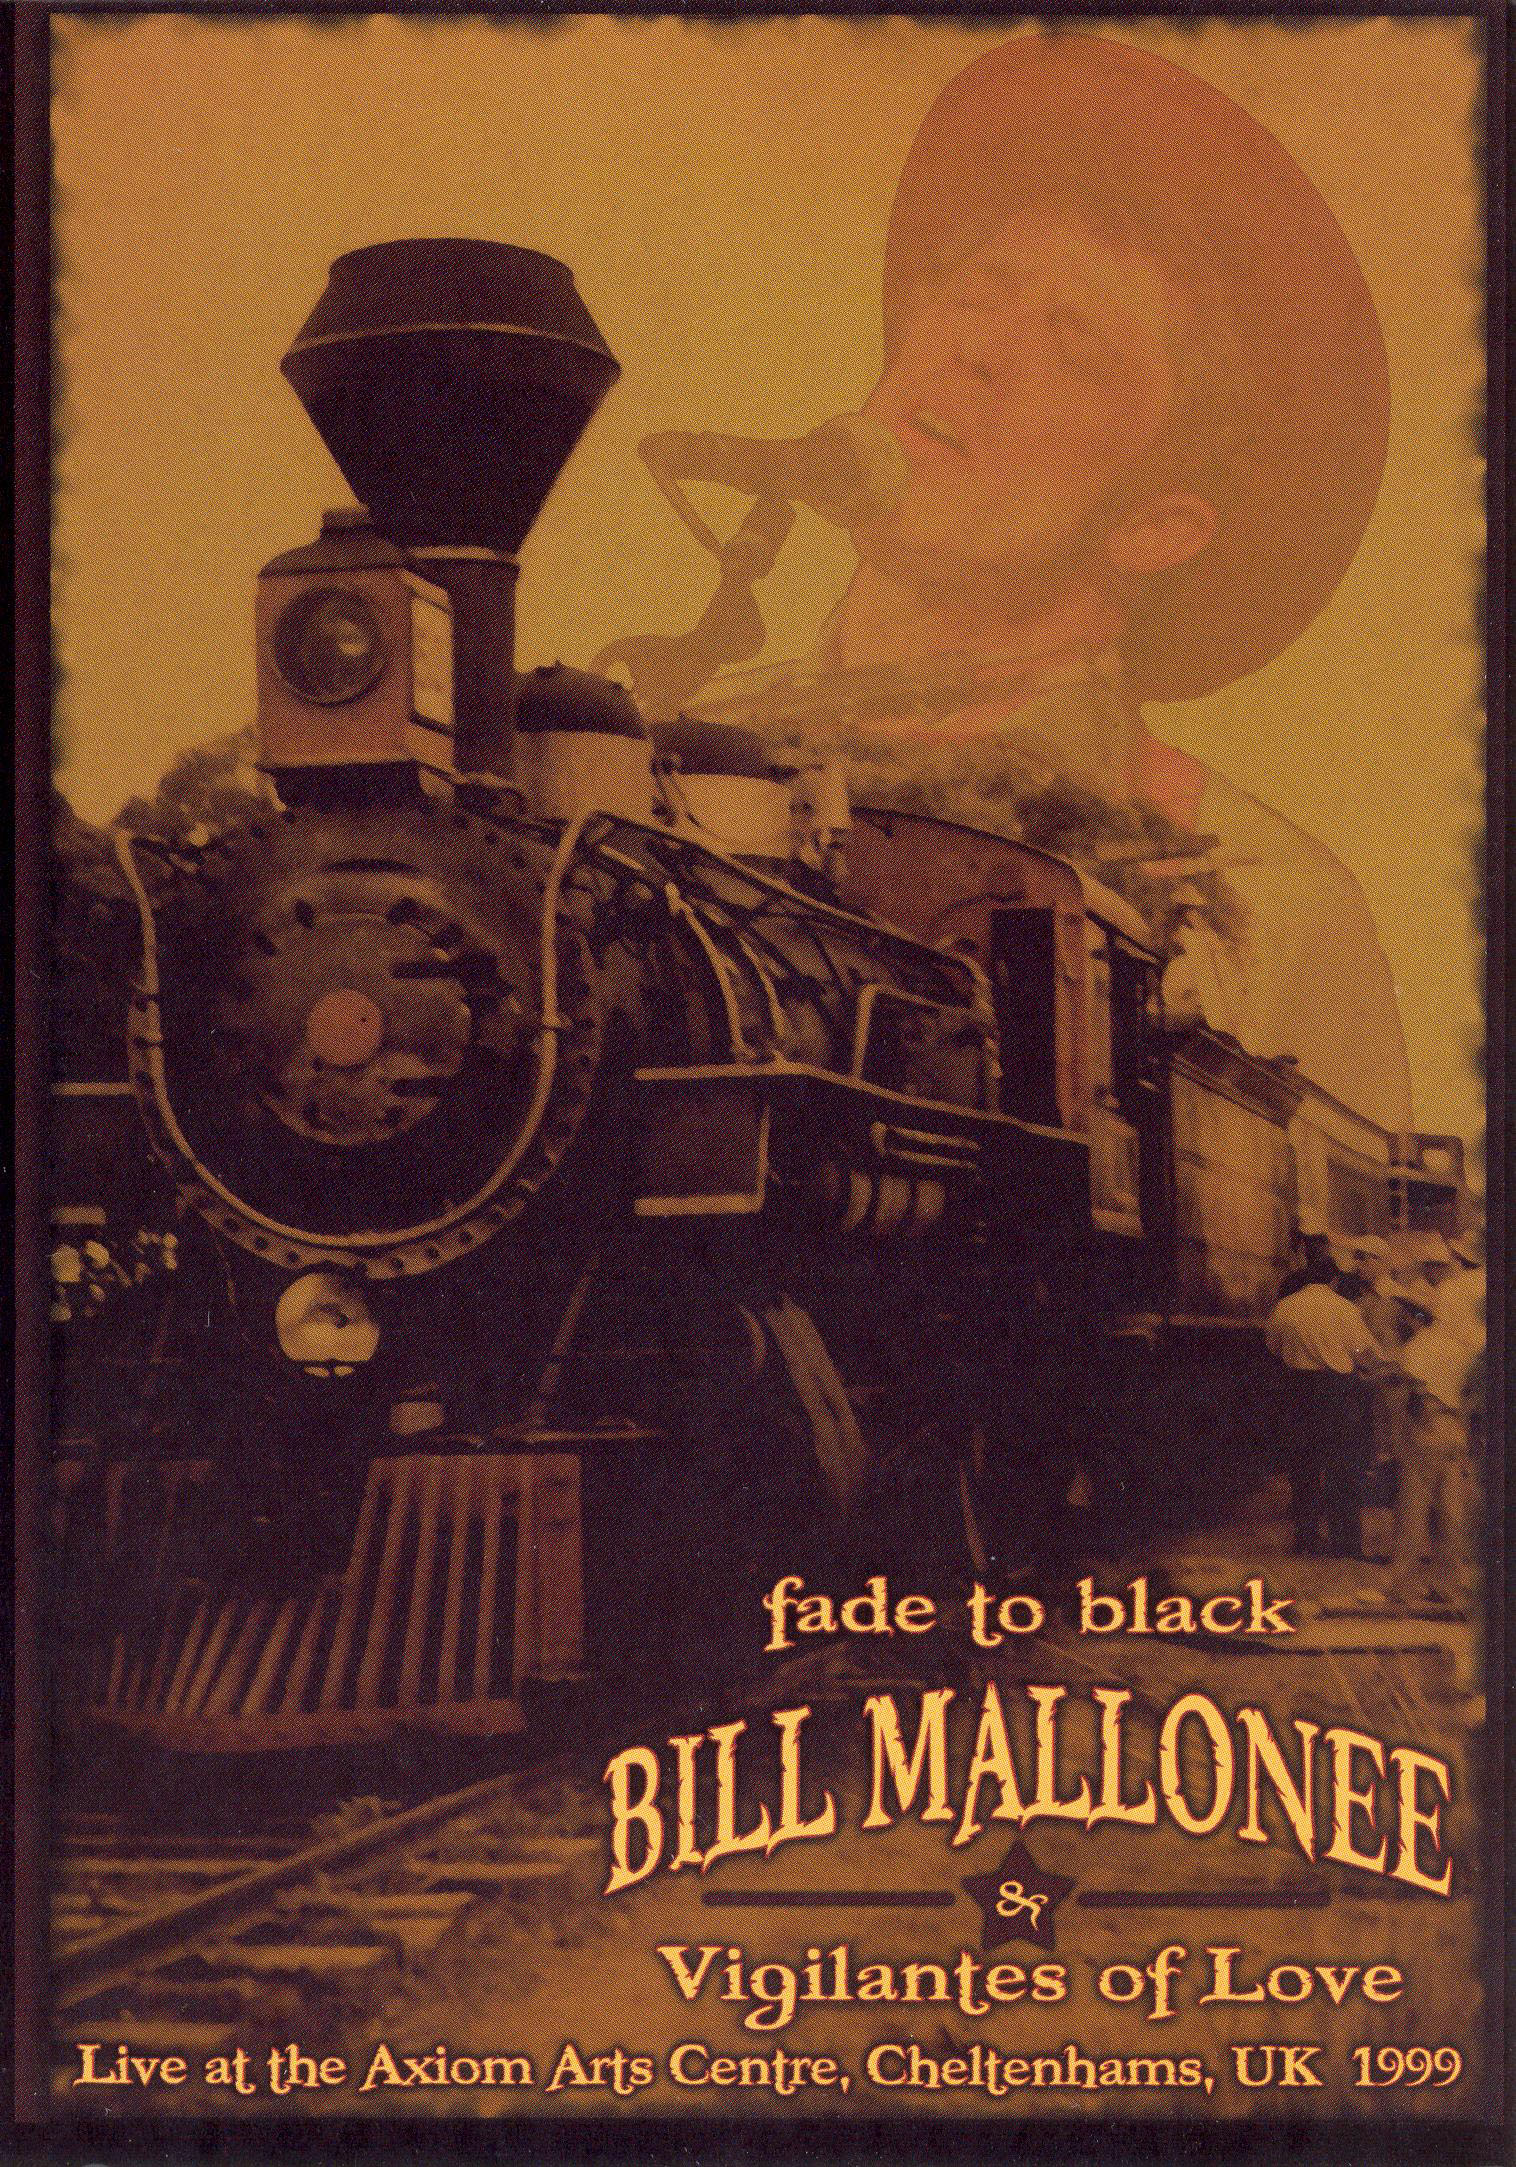 Bill Mallonee & Vigilantes of Love: Fade to Black